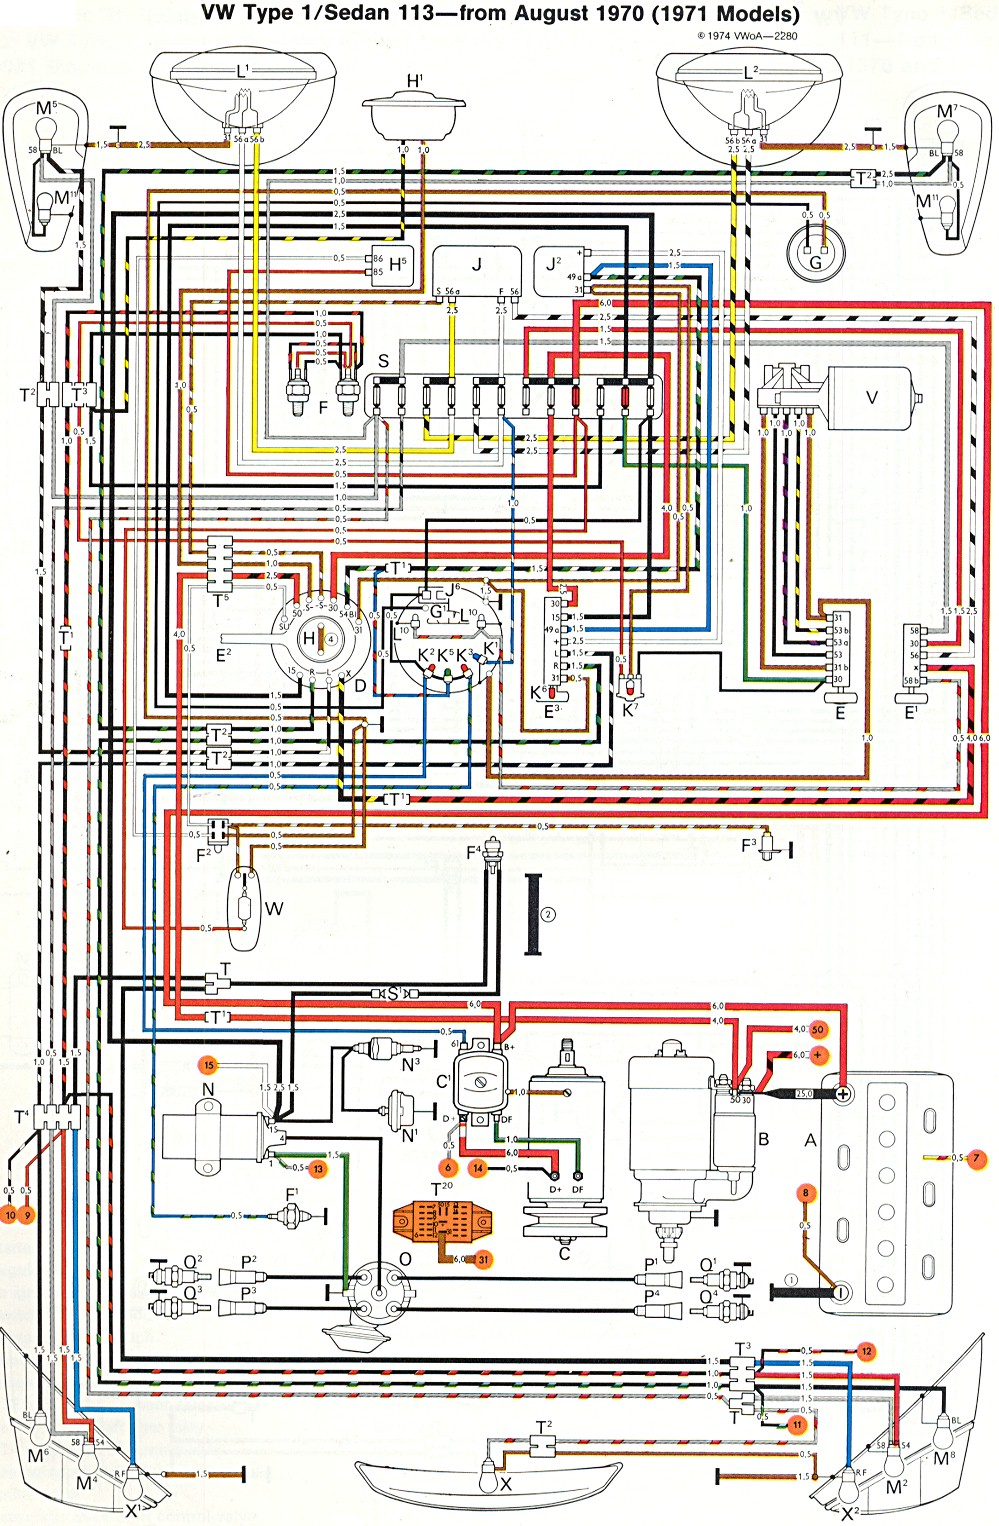 bug_super_71 2004 vw beetle wiring diagram 2004 vw beetle transmission problems 2000 vw beetle fuse diagram at gsmx.co